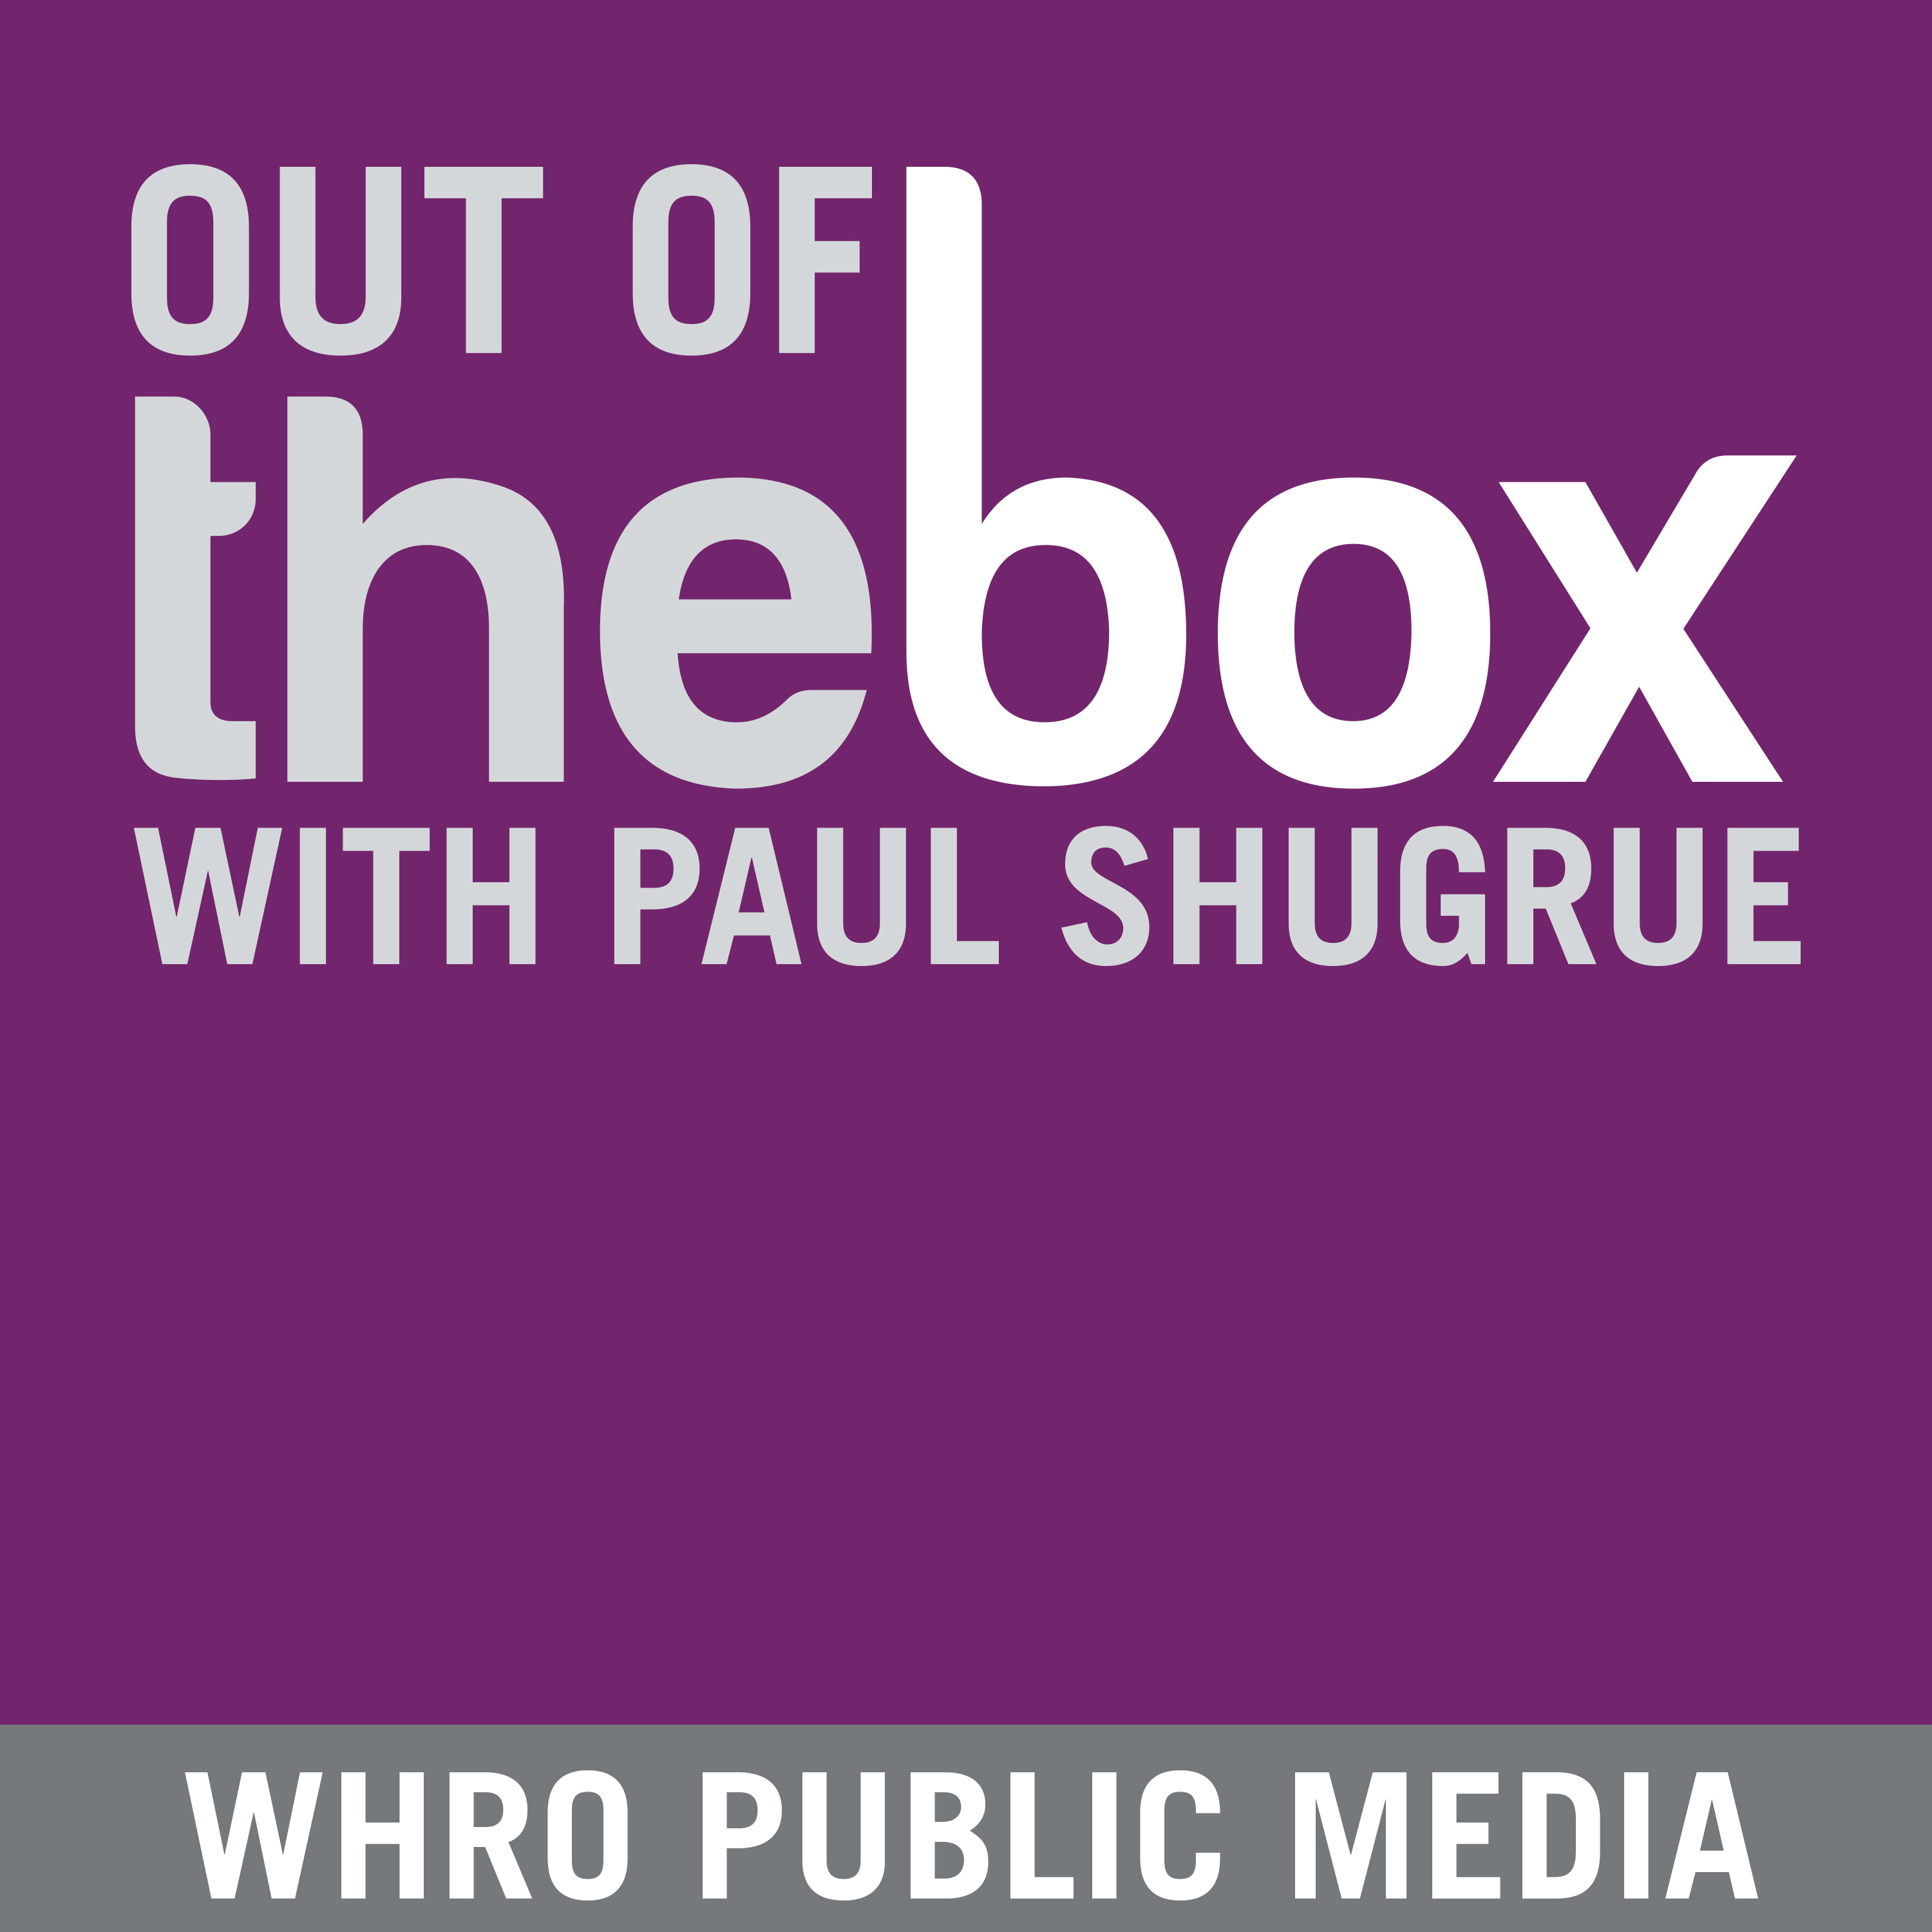 Out of the Box with Paul Shugrue WHRO